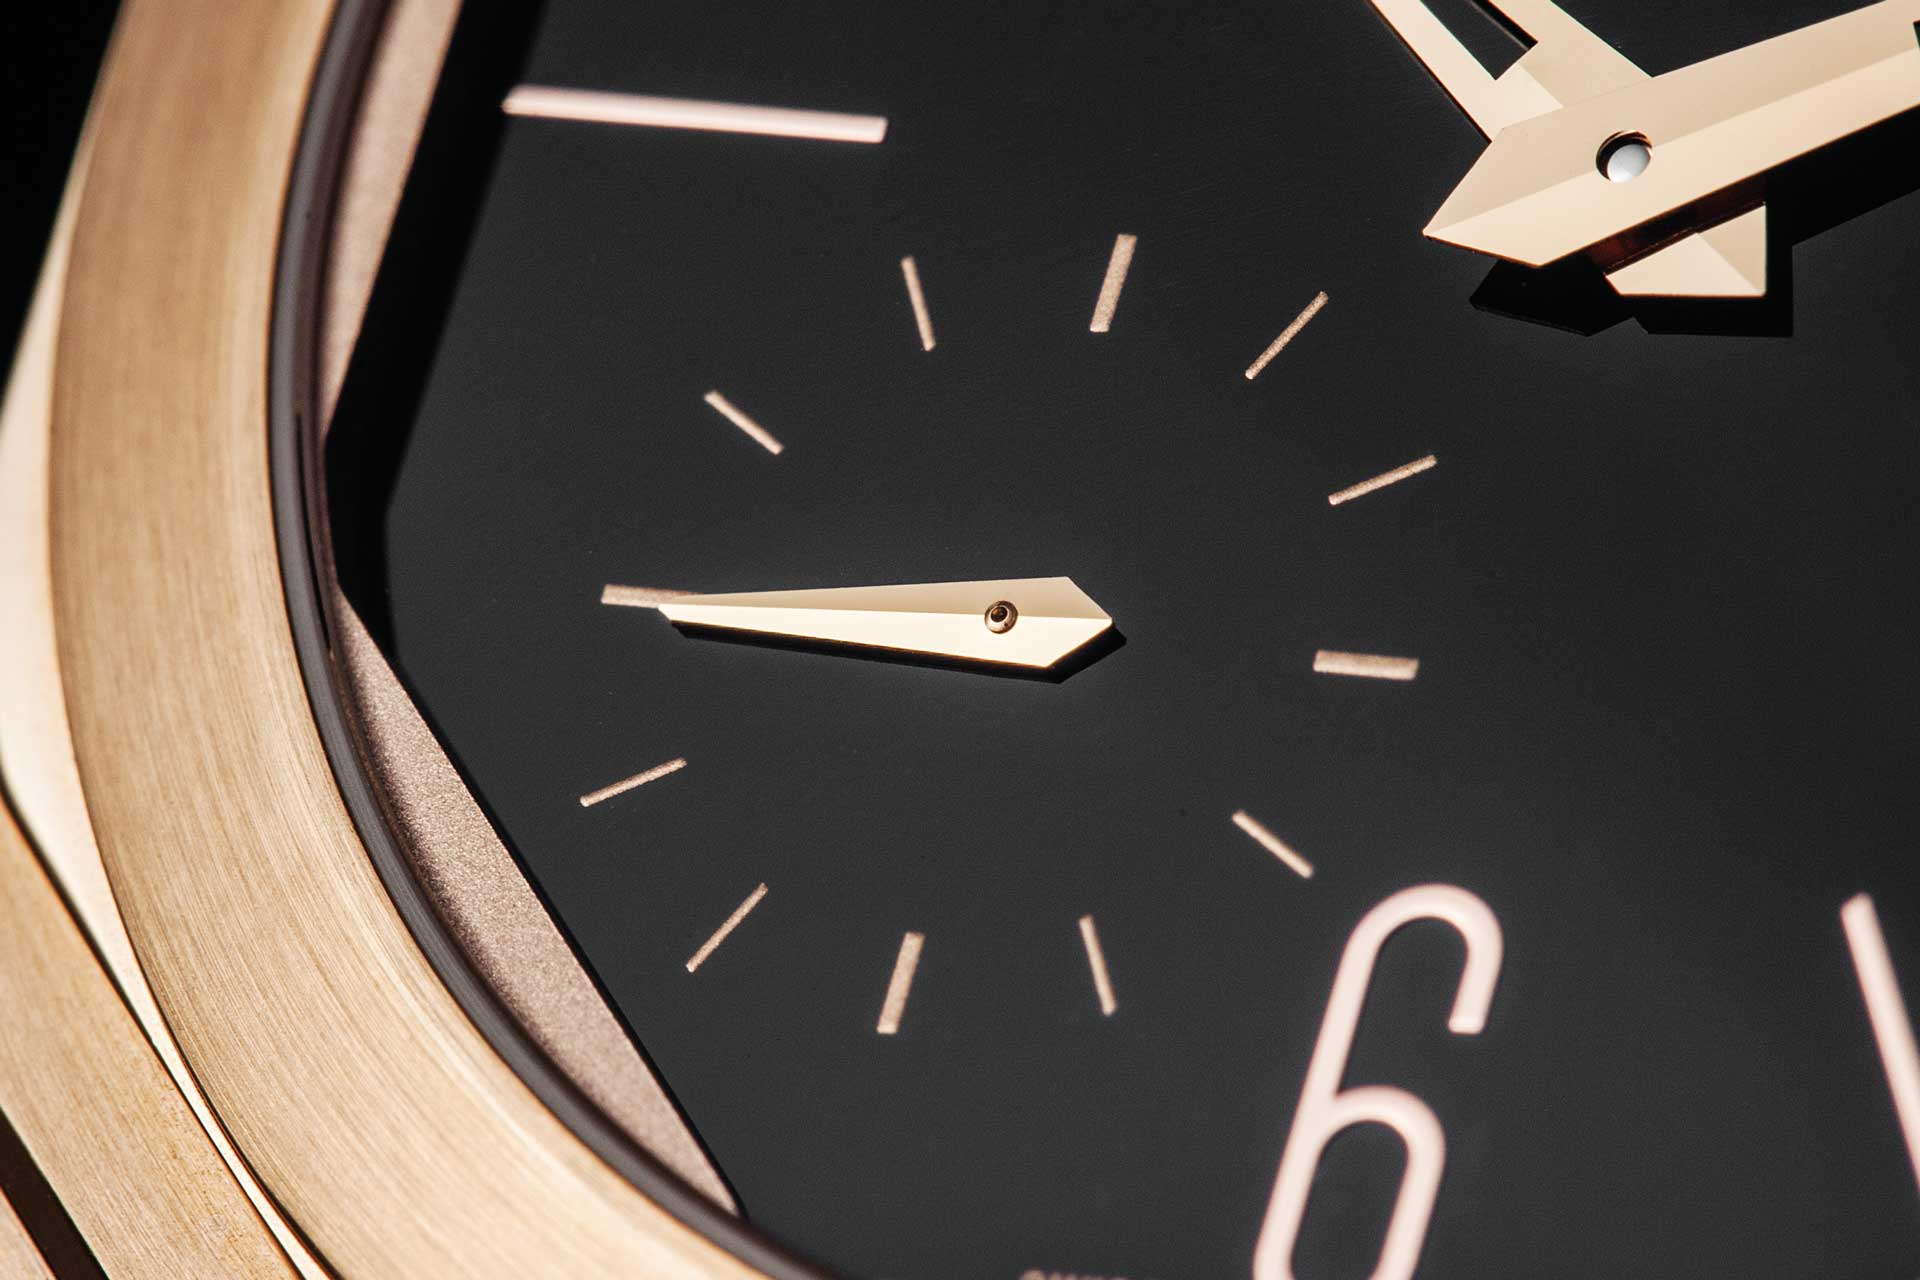 The small seconds counter is printed on the dial, because the height clearance needed for the seconds hand would not fit under the sapphire crystal otherwise (©Revolution)